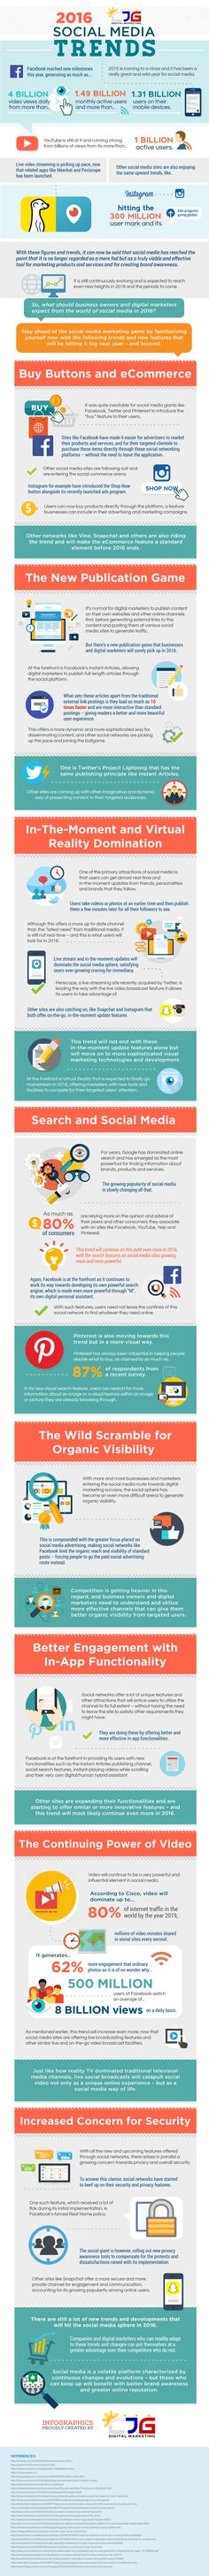 The Top 8 Social Media Trends to Watch Out For in 2016 (Infographic) - An Infographic from CJG Digital Marketing